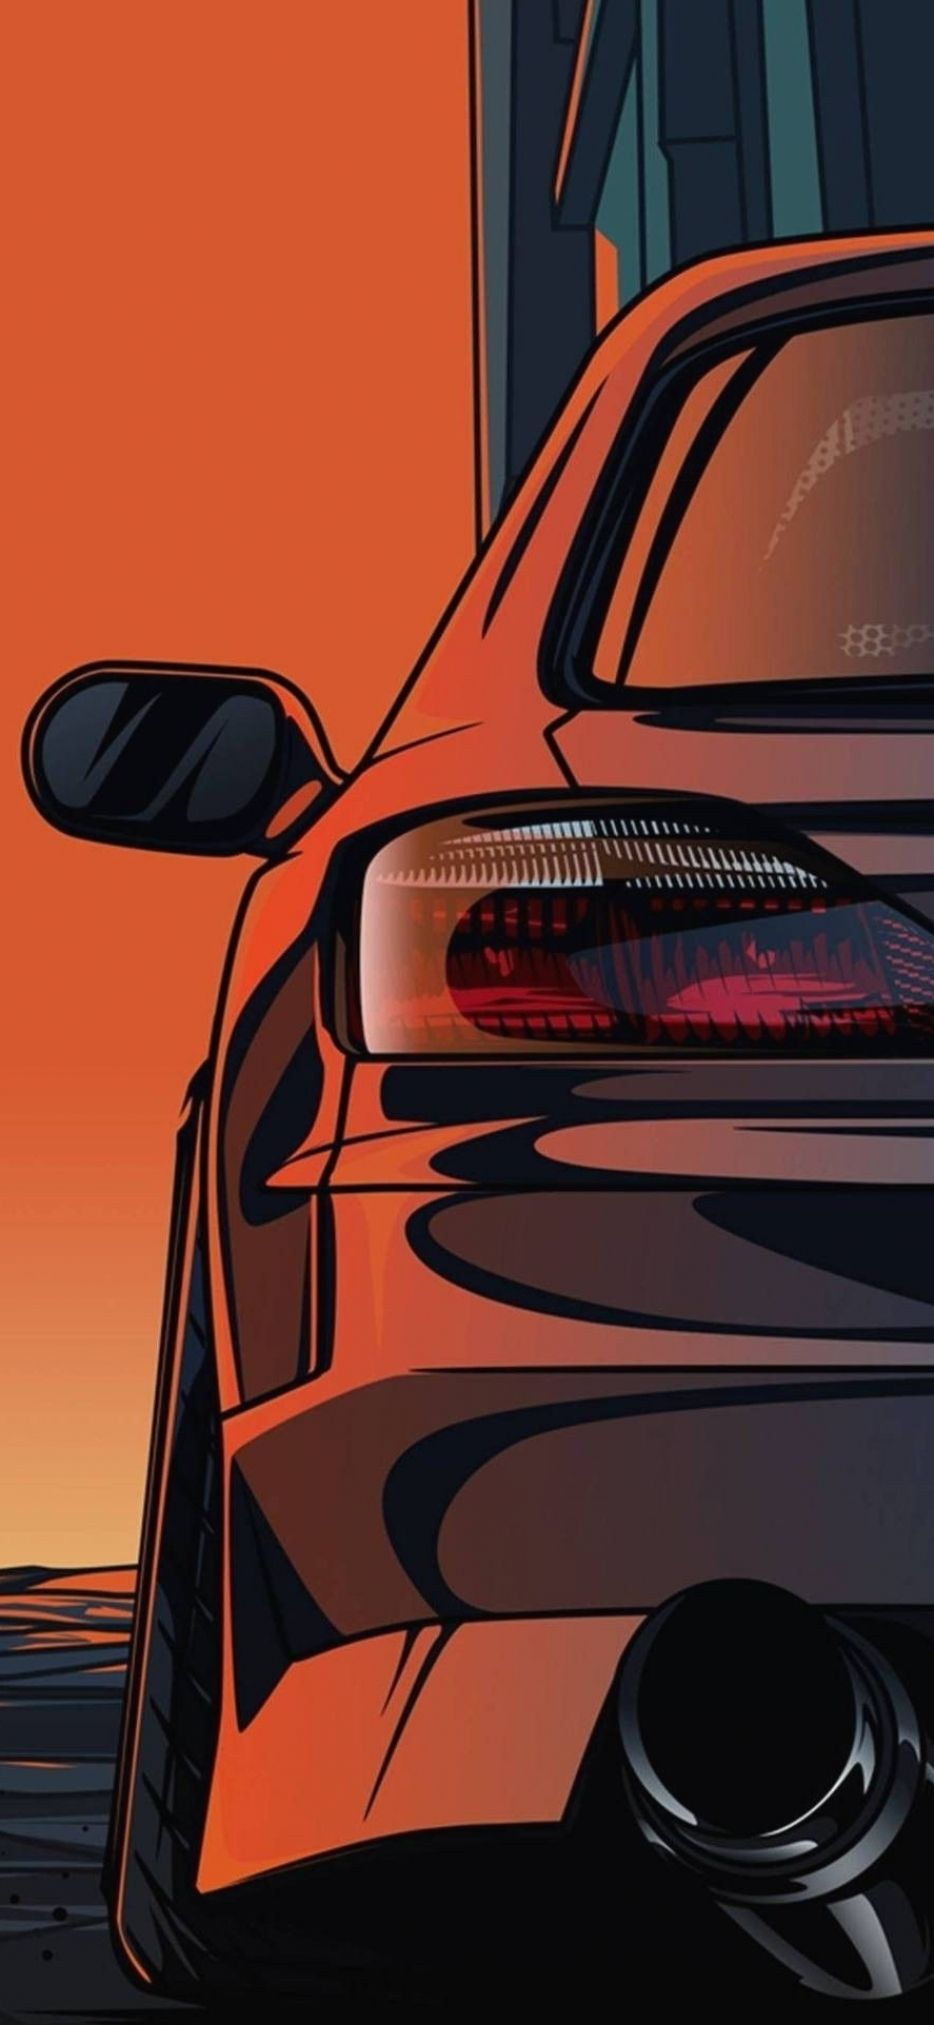 Car wallpaper HD for iphone and android #iphone #wallpaper